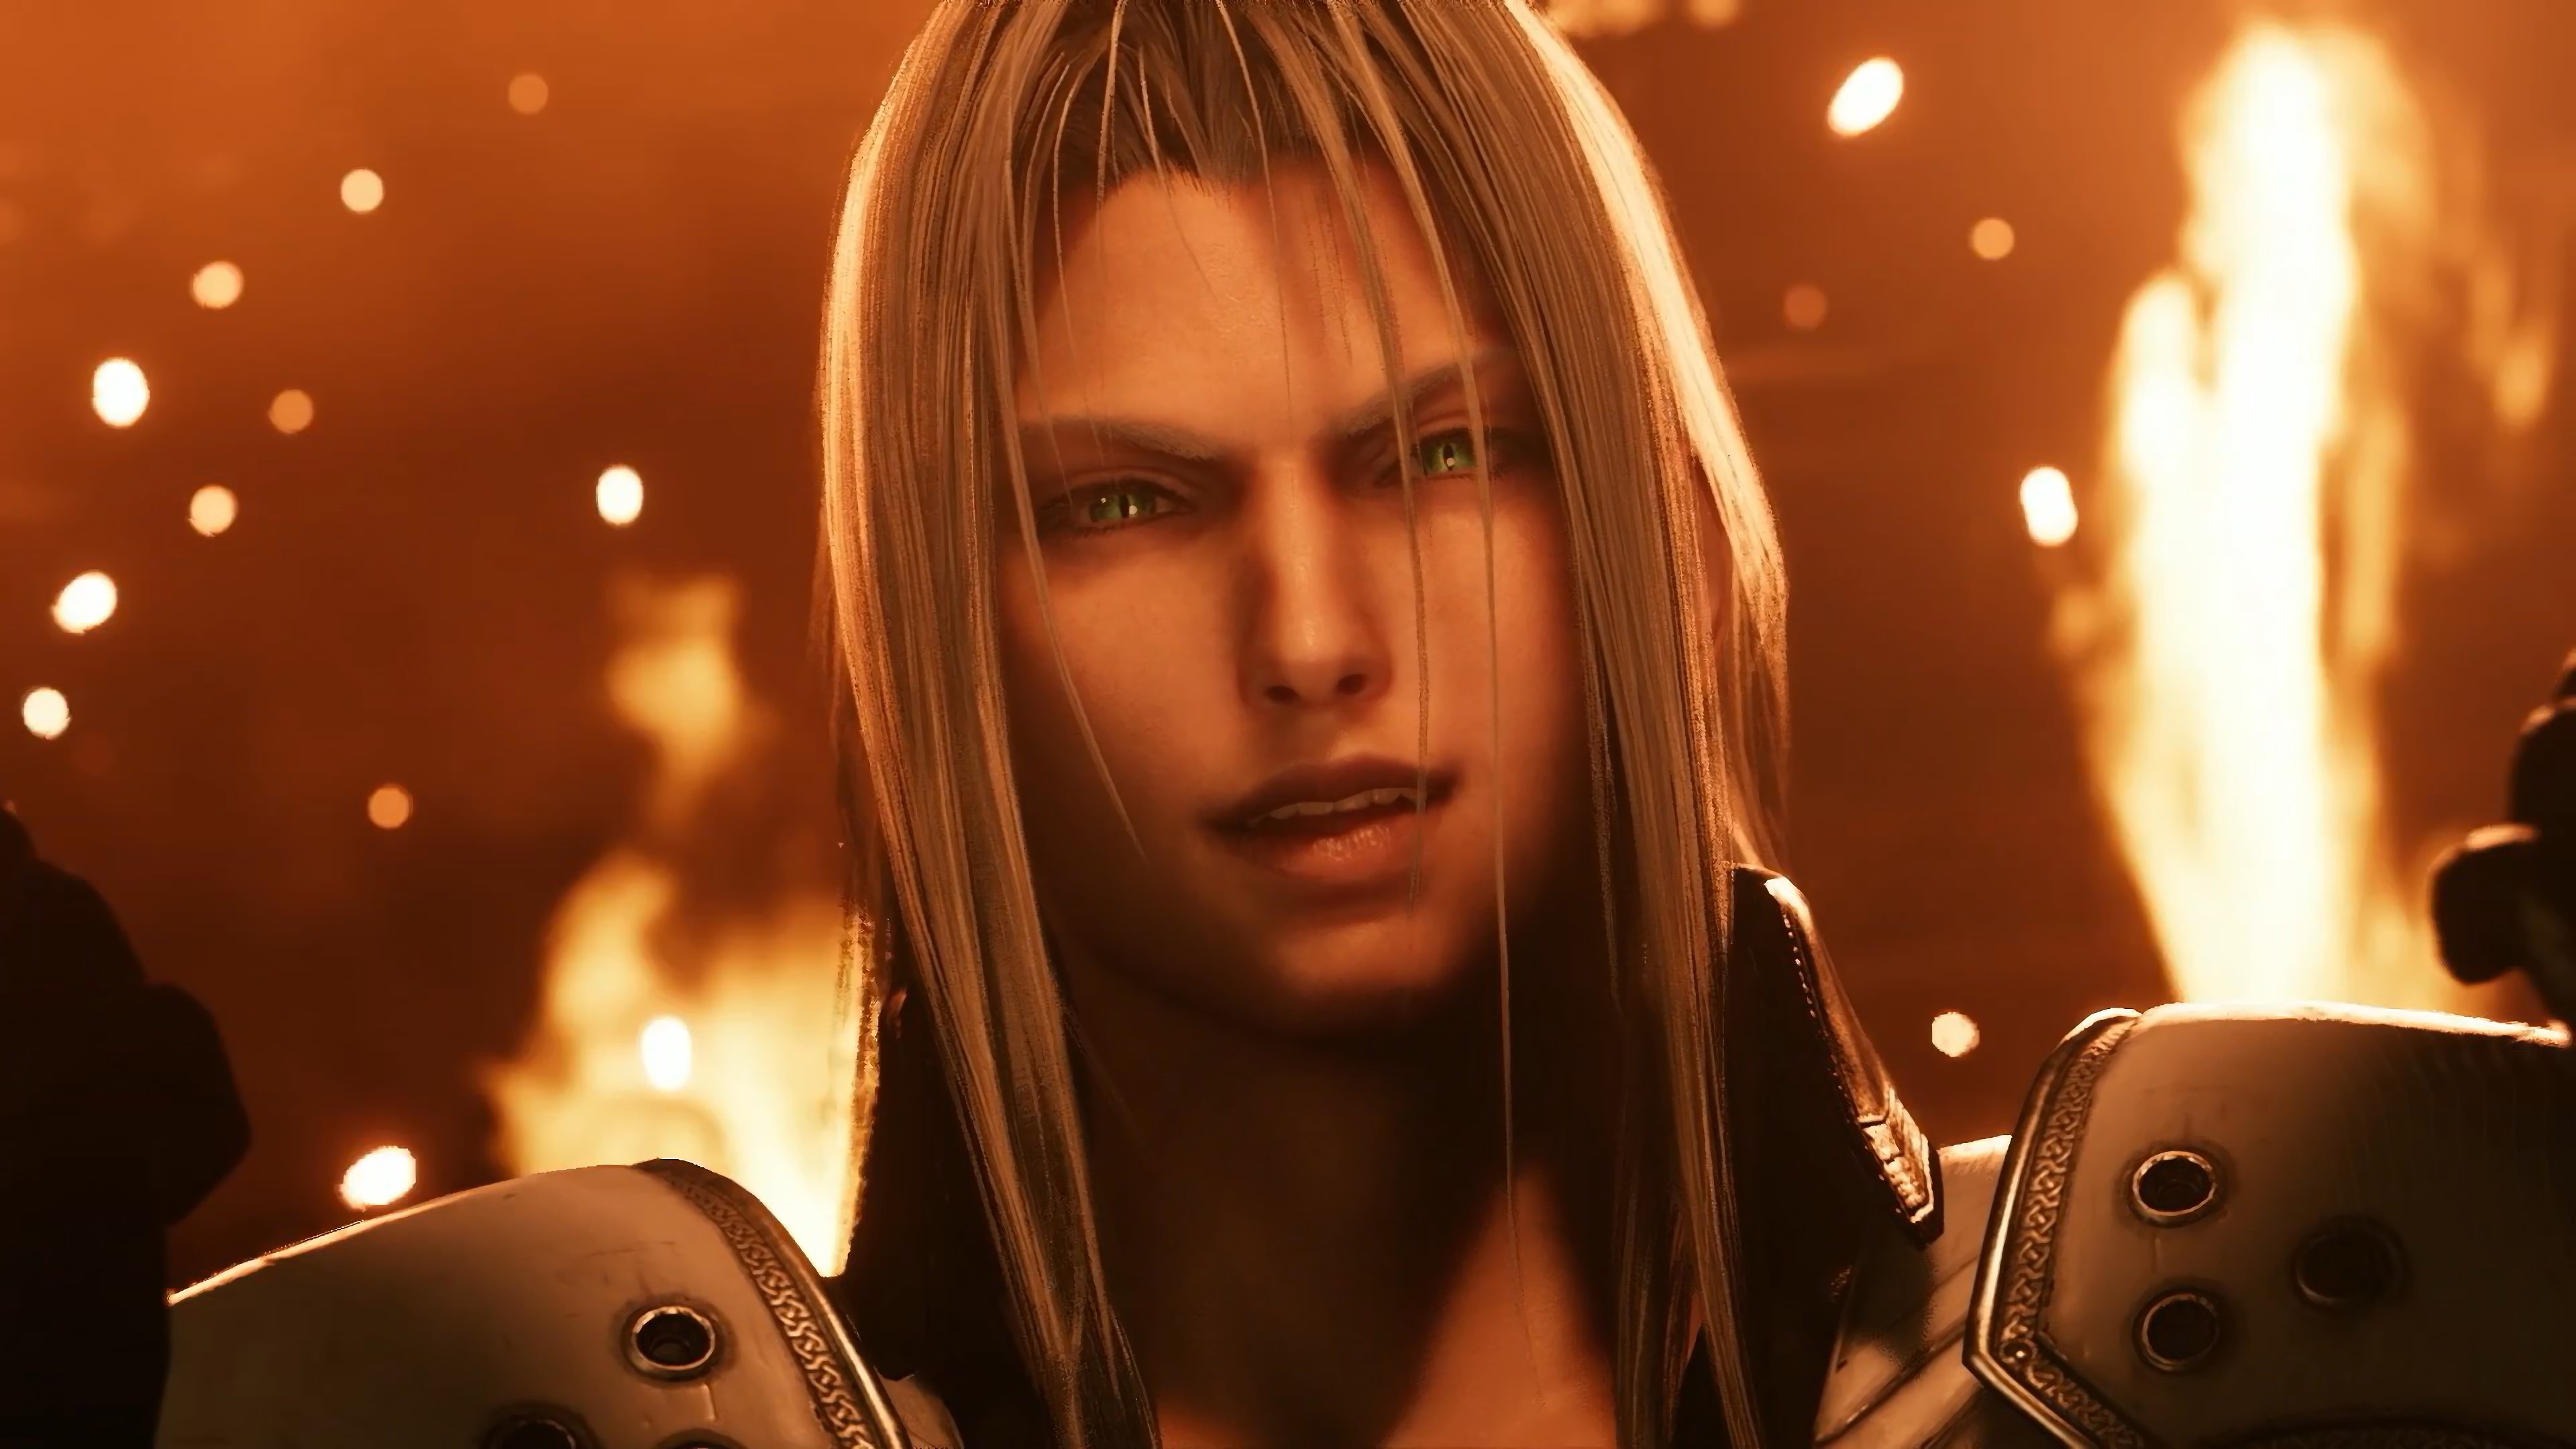 Sephiroth Final Fantasy 7 Remake 4k Wallpaper 10